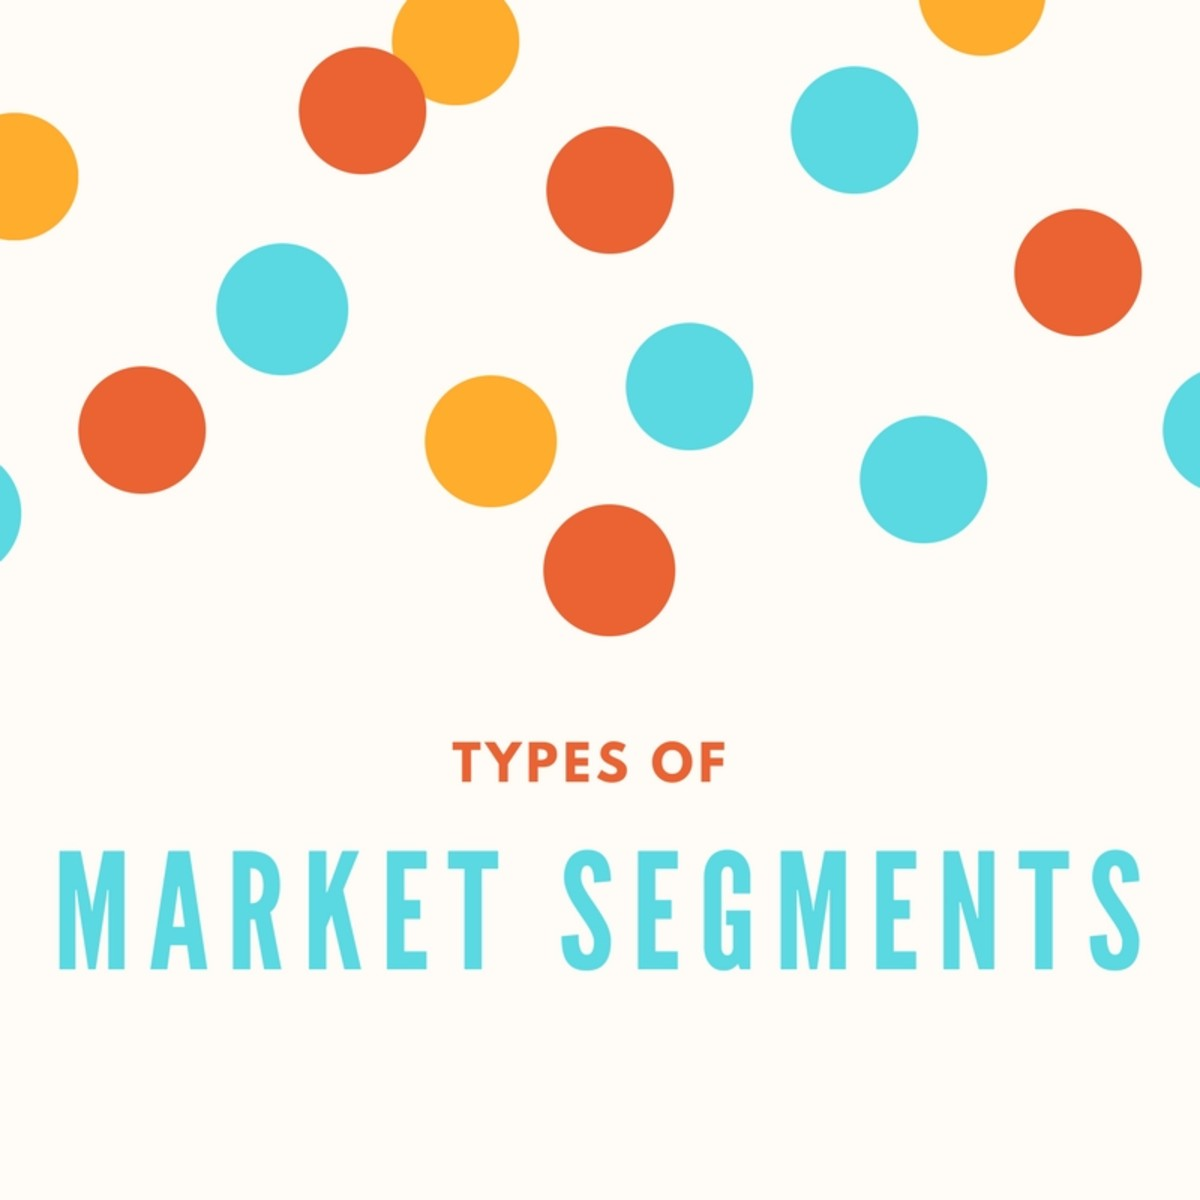 Types of Market Segments